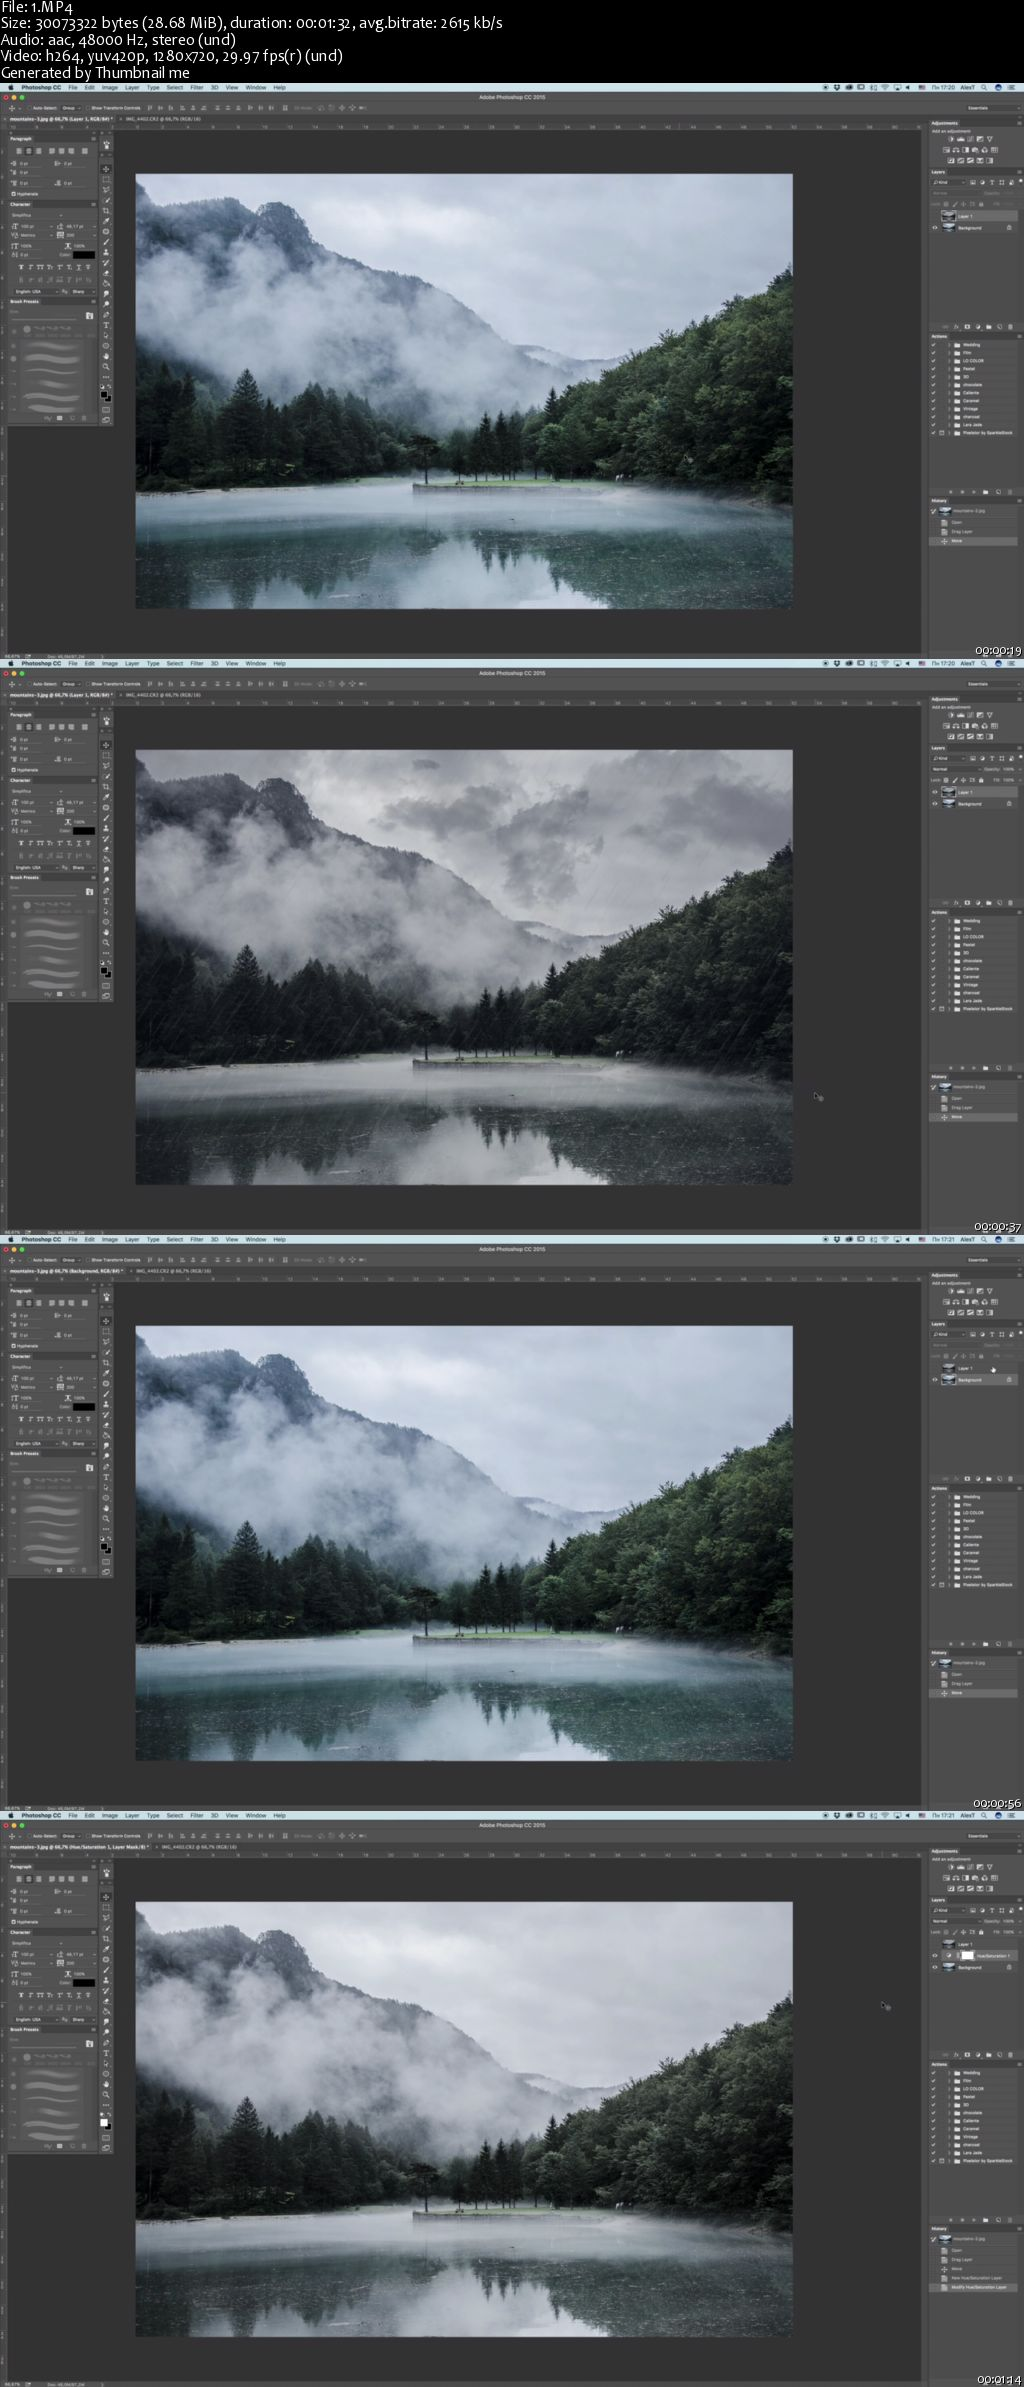 Rain Effect / How to create a rain effect in Photoshop CC / part 1